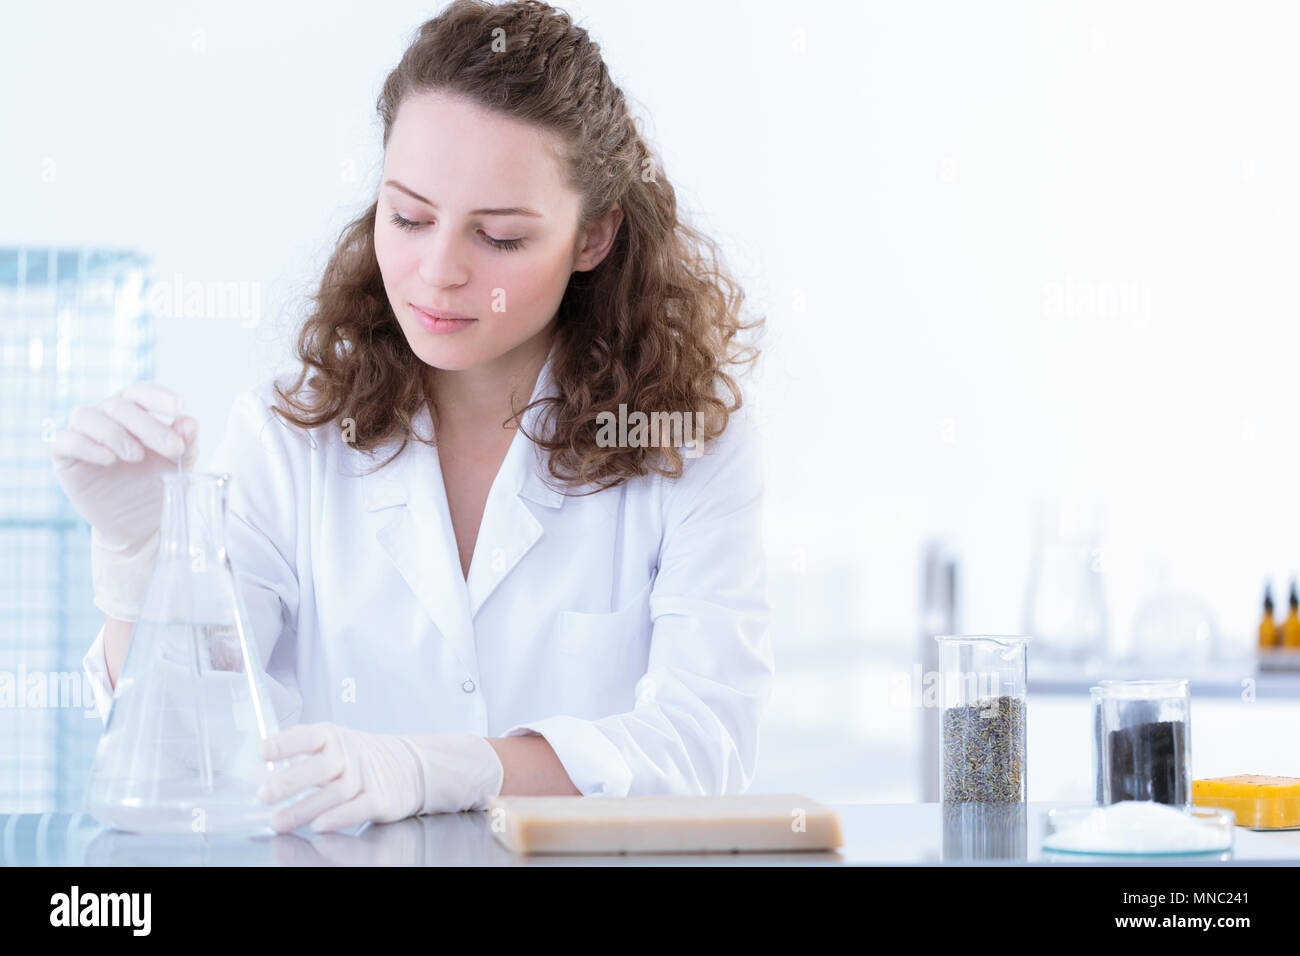 Biotechnologist dissolving the sample in a solution during laboratory analysis - Stock Image